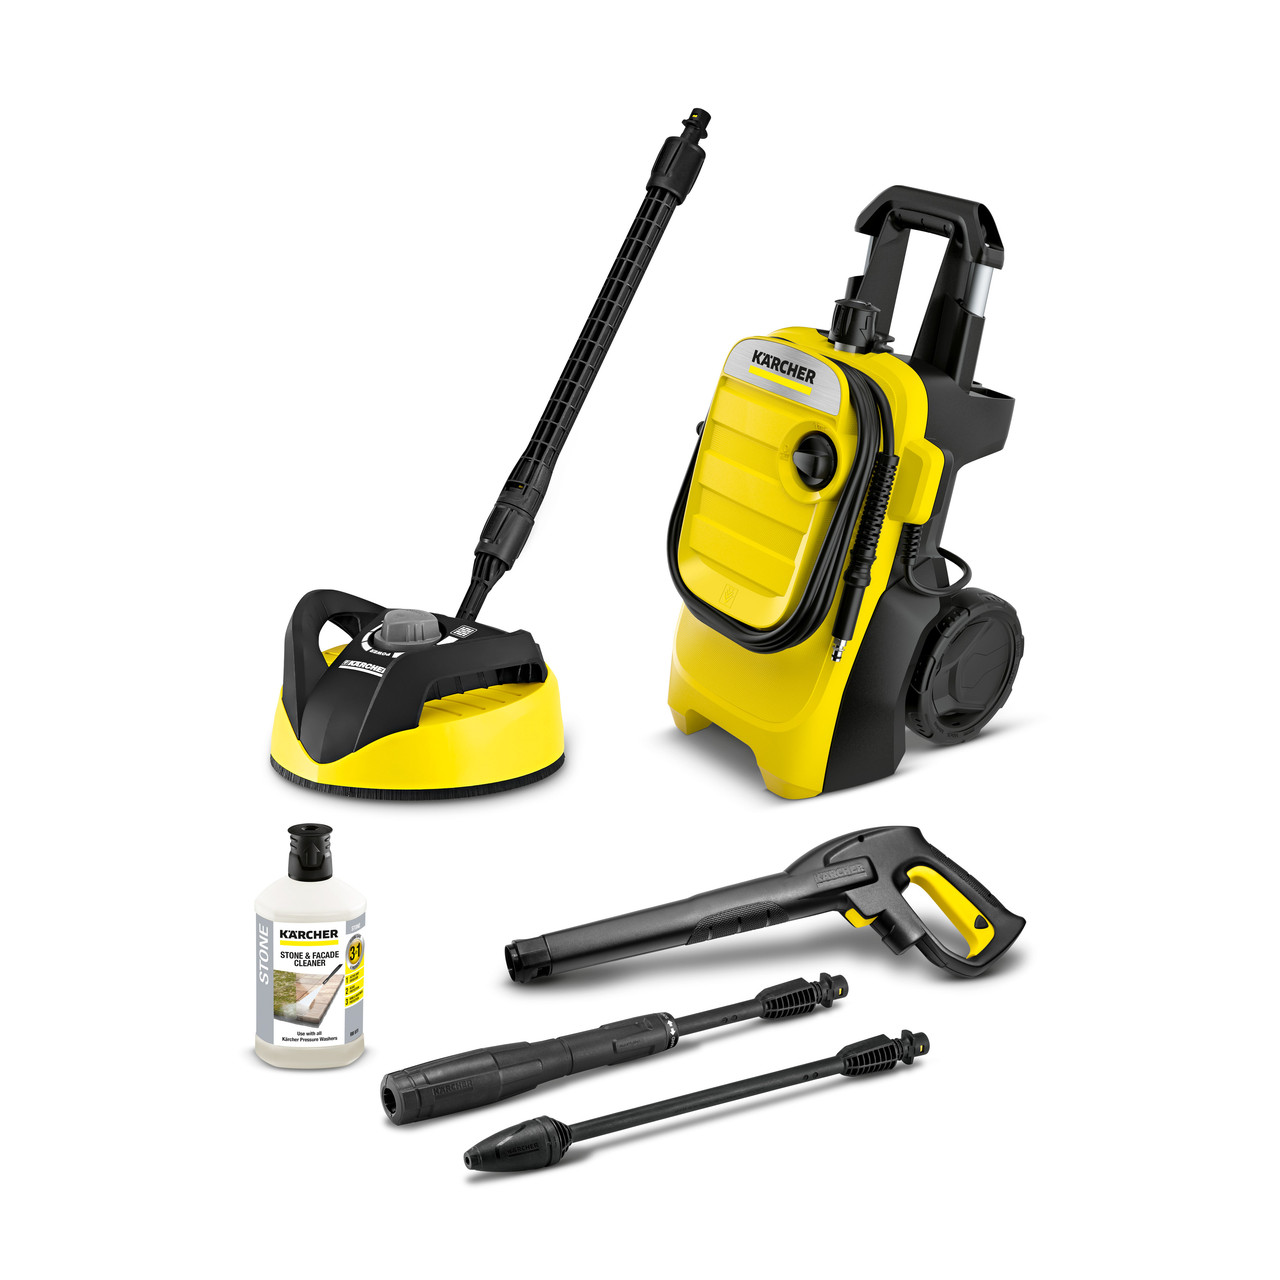 Karcher K 4 Compact Home 1.637-503.0